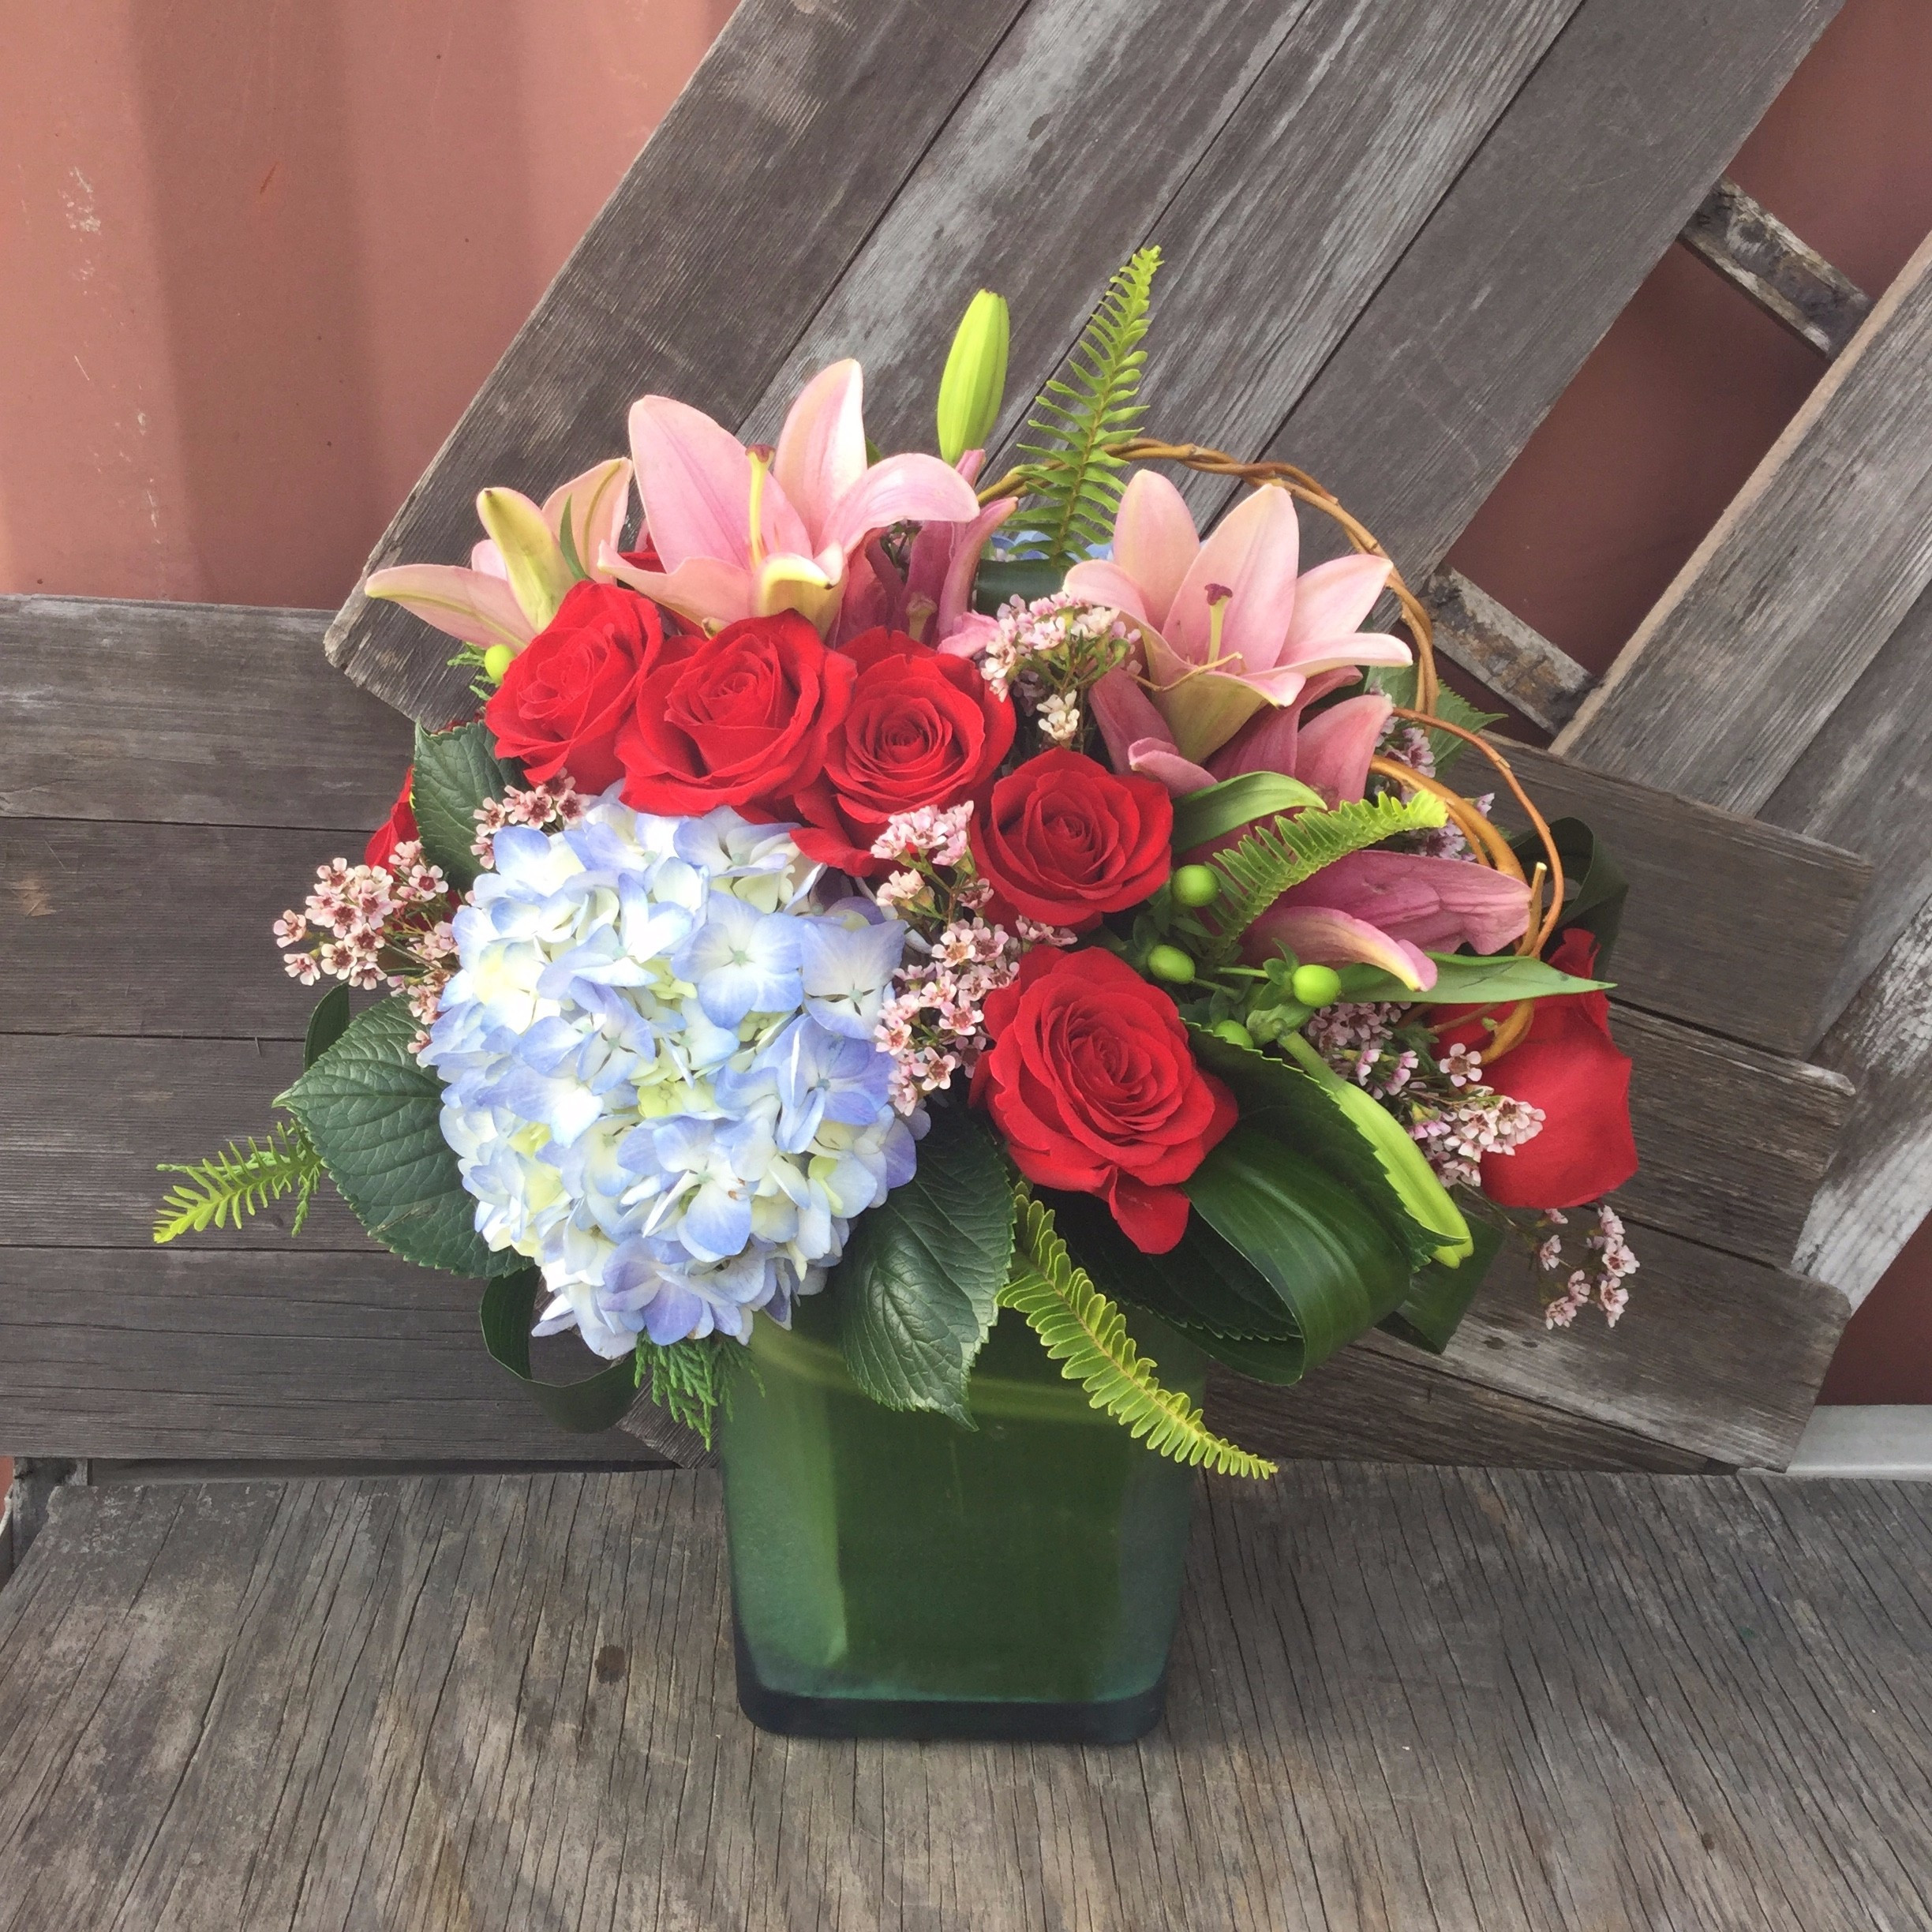 flower vase with artificial flowers online shopping of new orleans florist flower delivery by monas accents throughout extravagant blooms